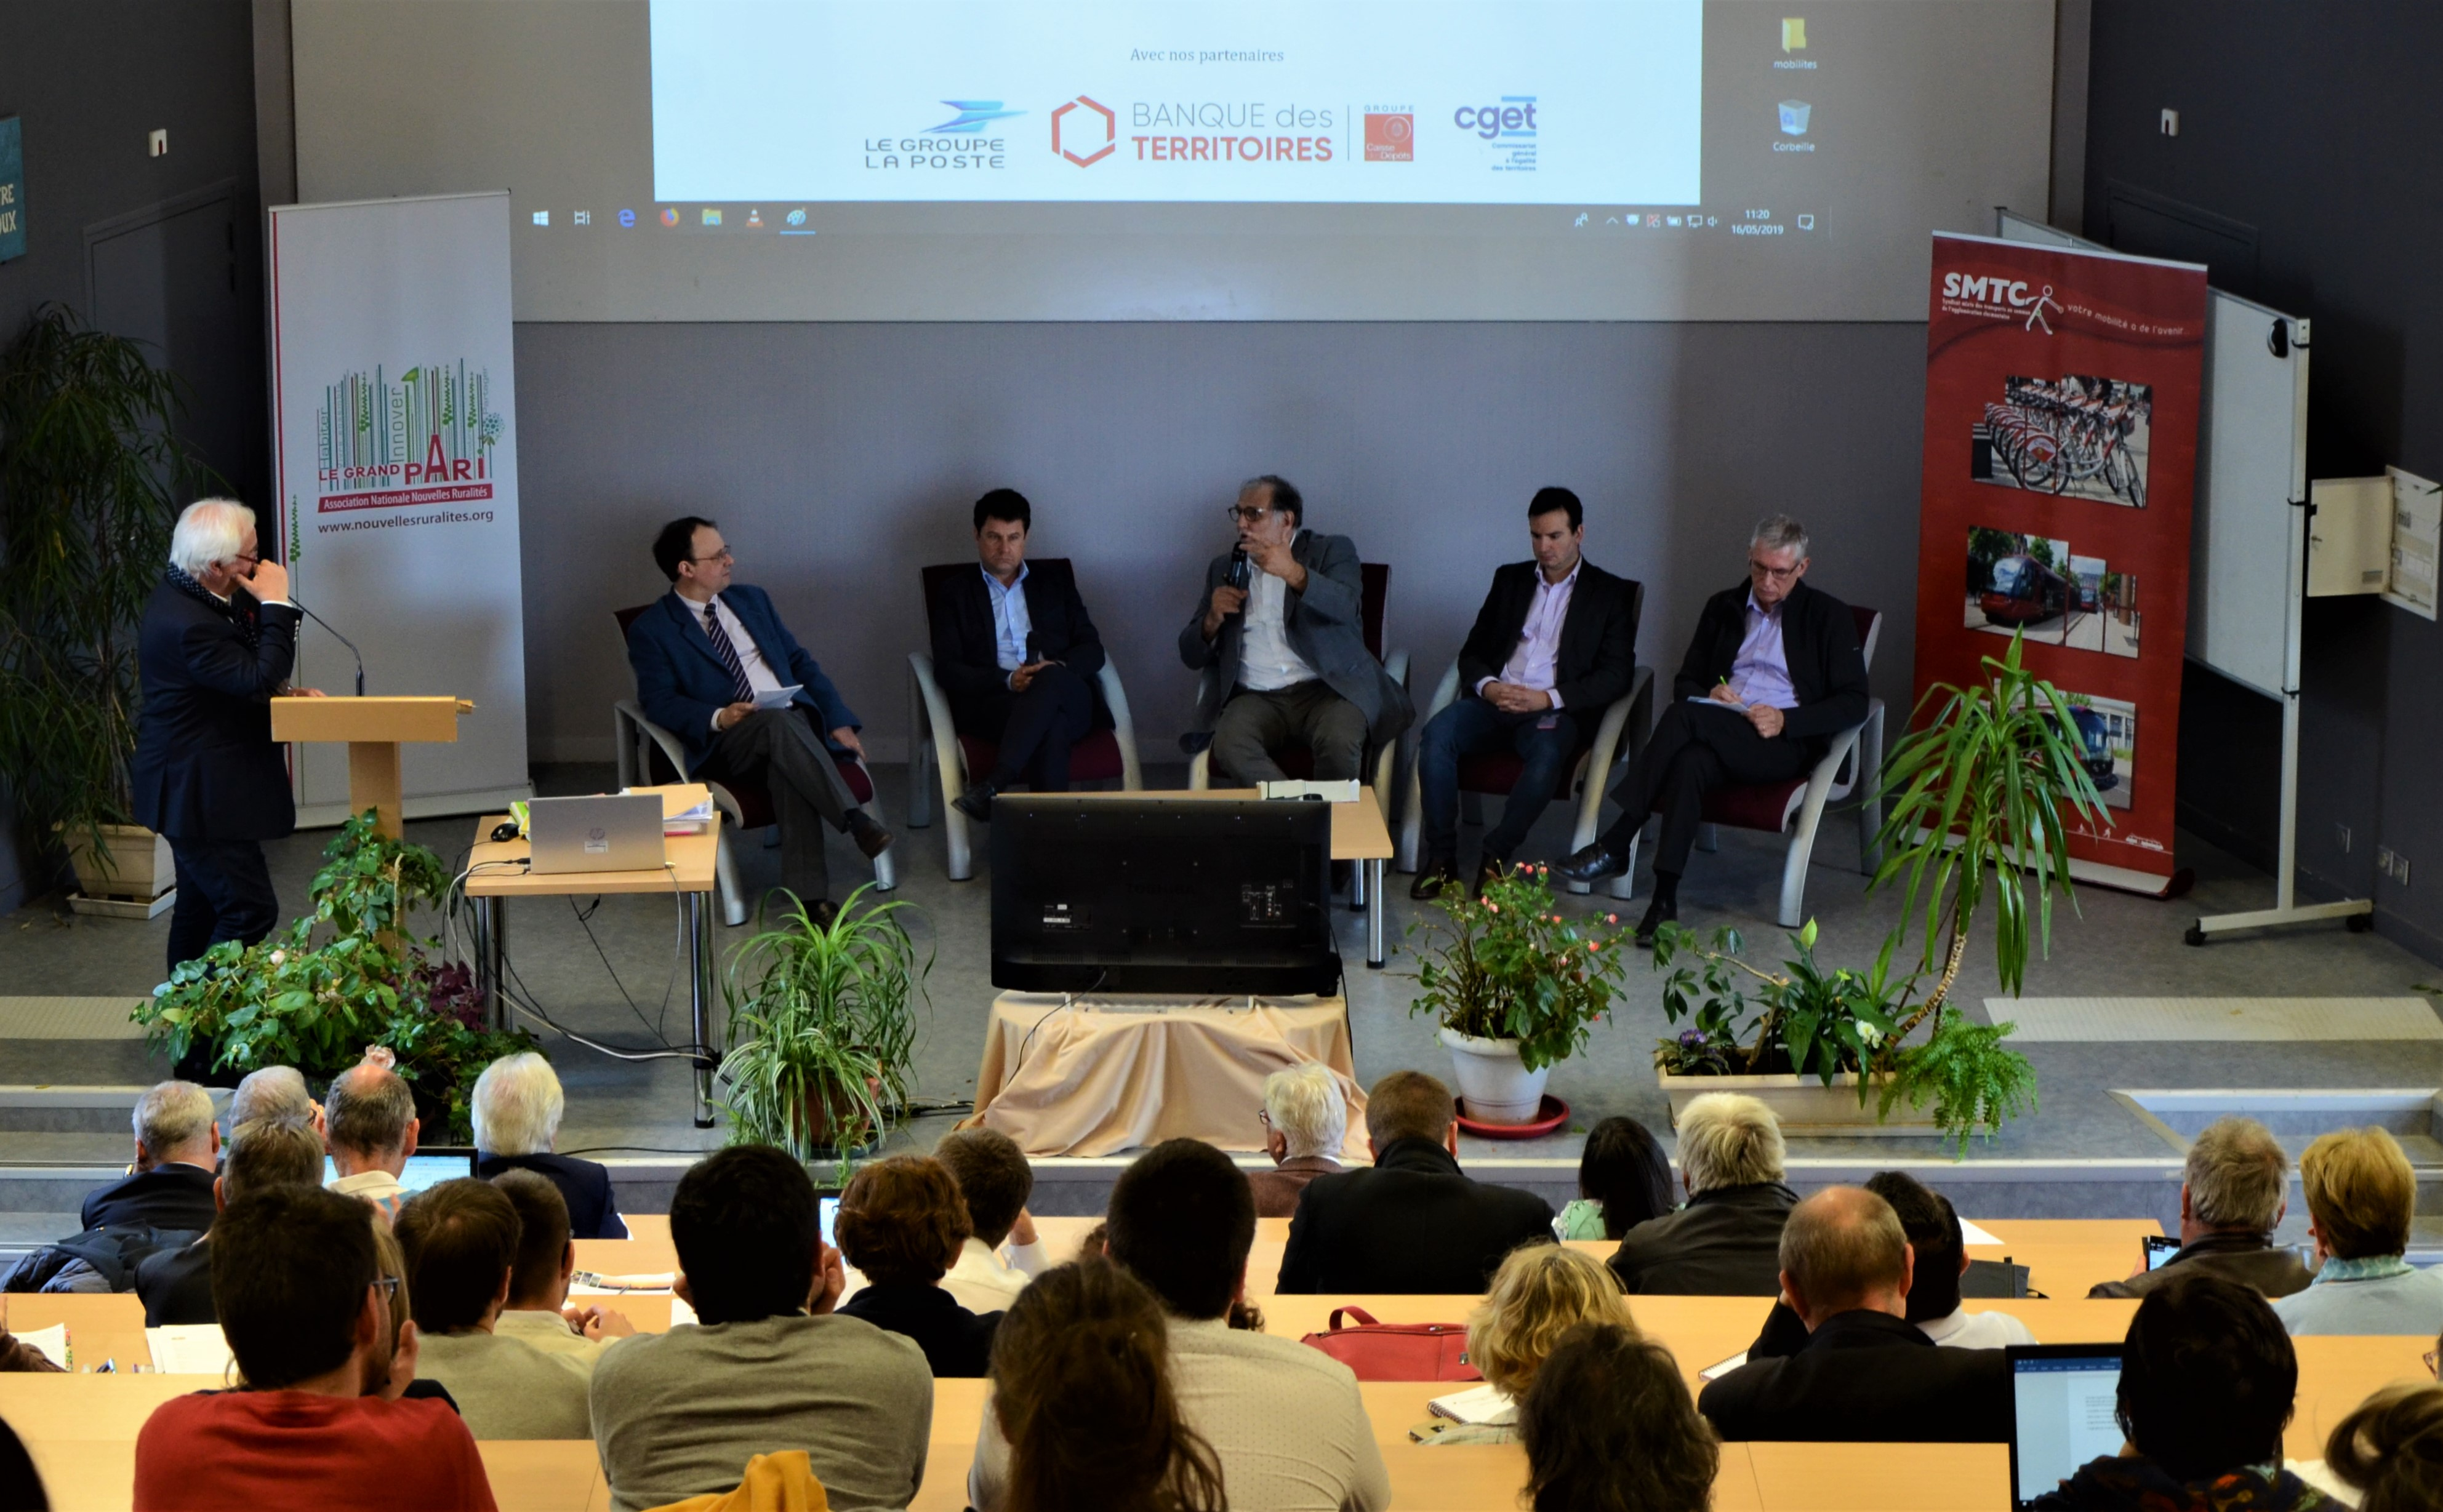 Table ronde covoiturage, Colloque 16/05/19 Vetagrosup